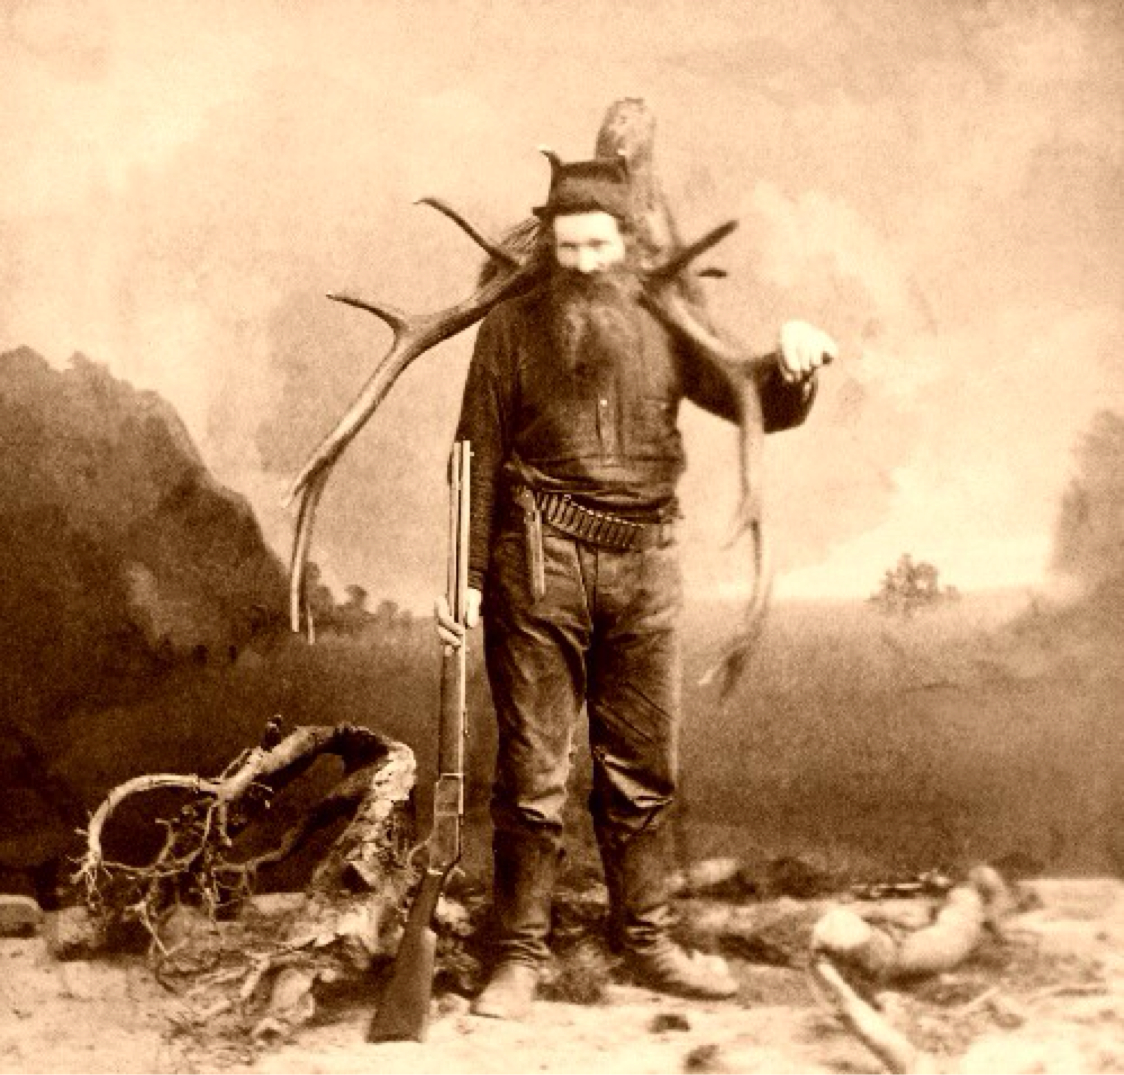 French trapper from the 19th century bringing home the goods.